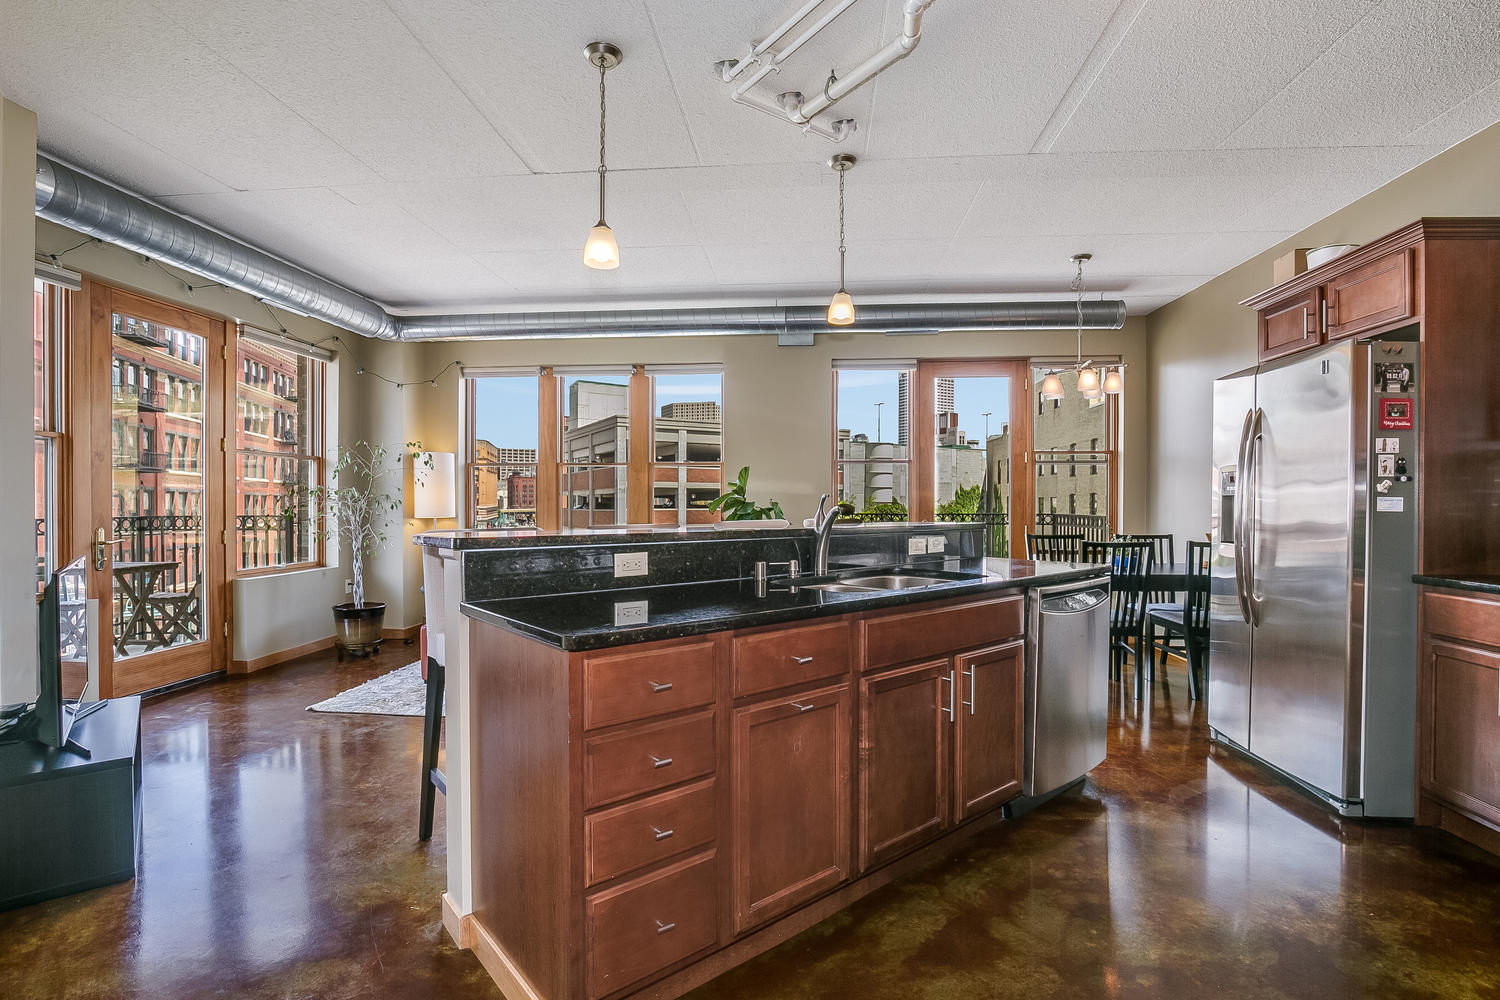 102 N. Water St., Unit 401. Photo courtesy of Corley Real Estate.